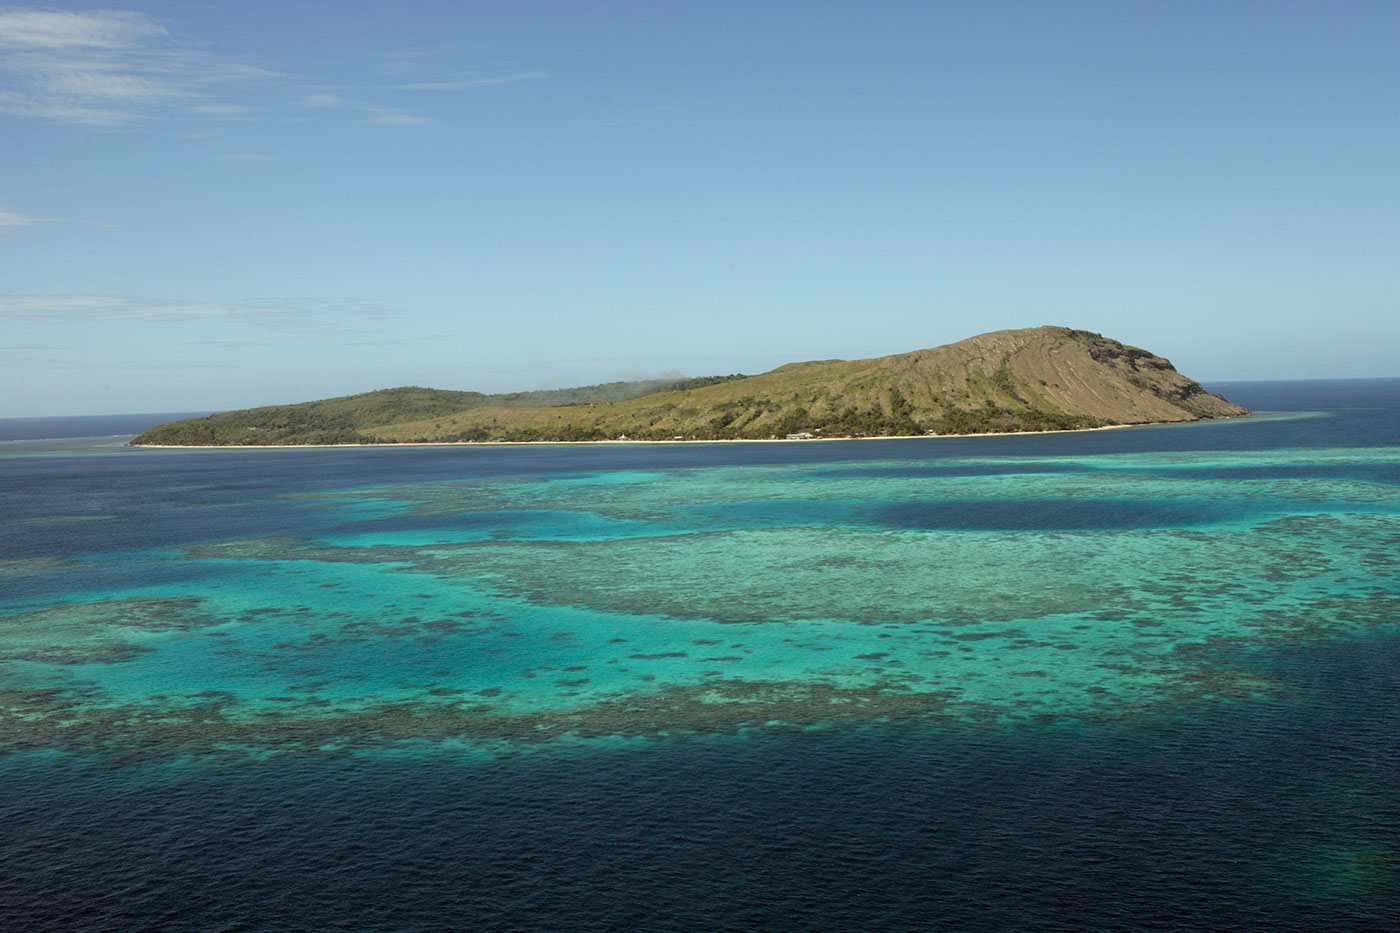 Photograph of an island surrounded by turquoise sea and reefs - click to view larger image